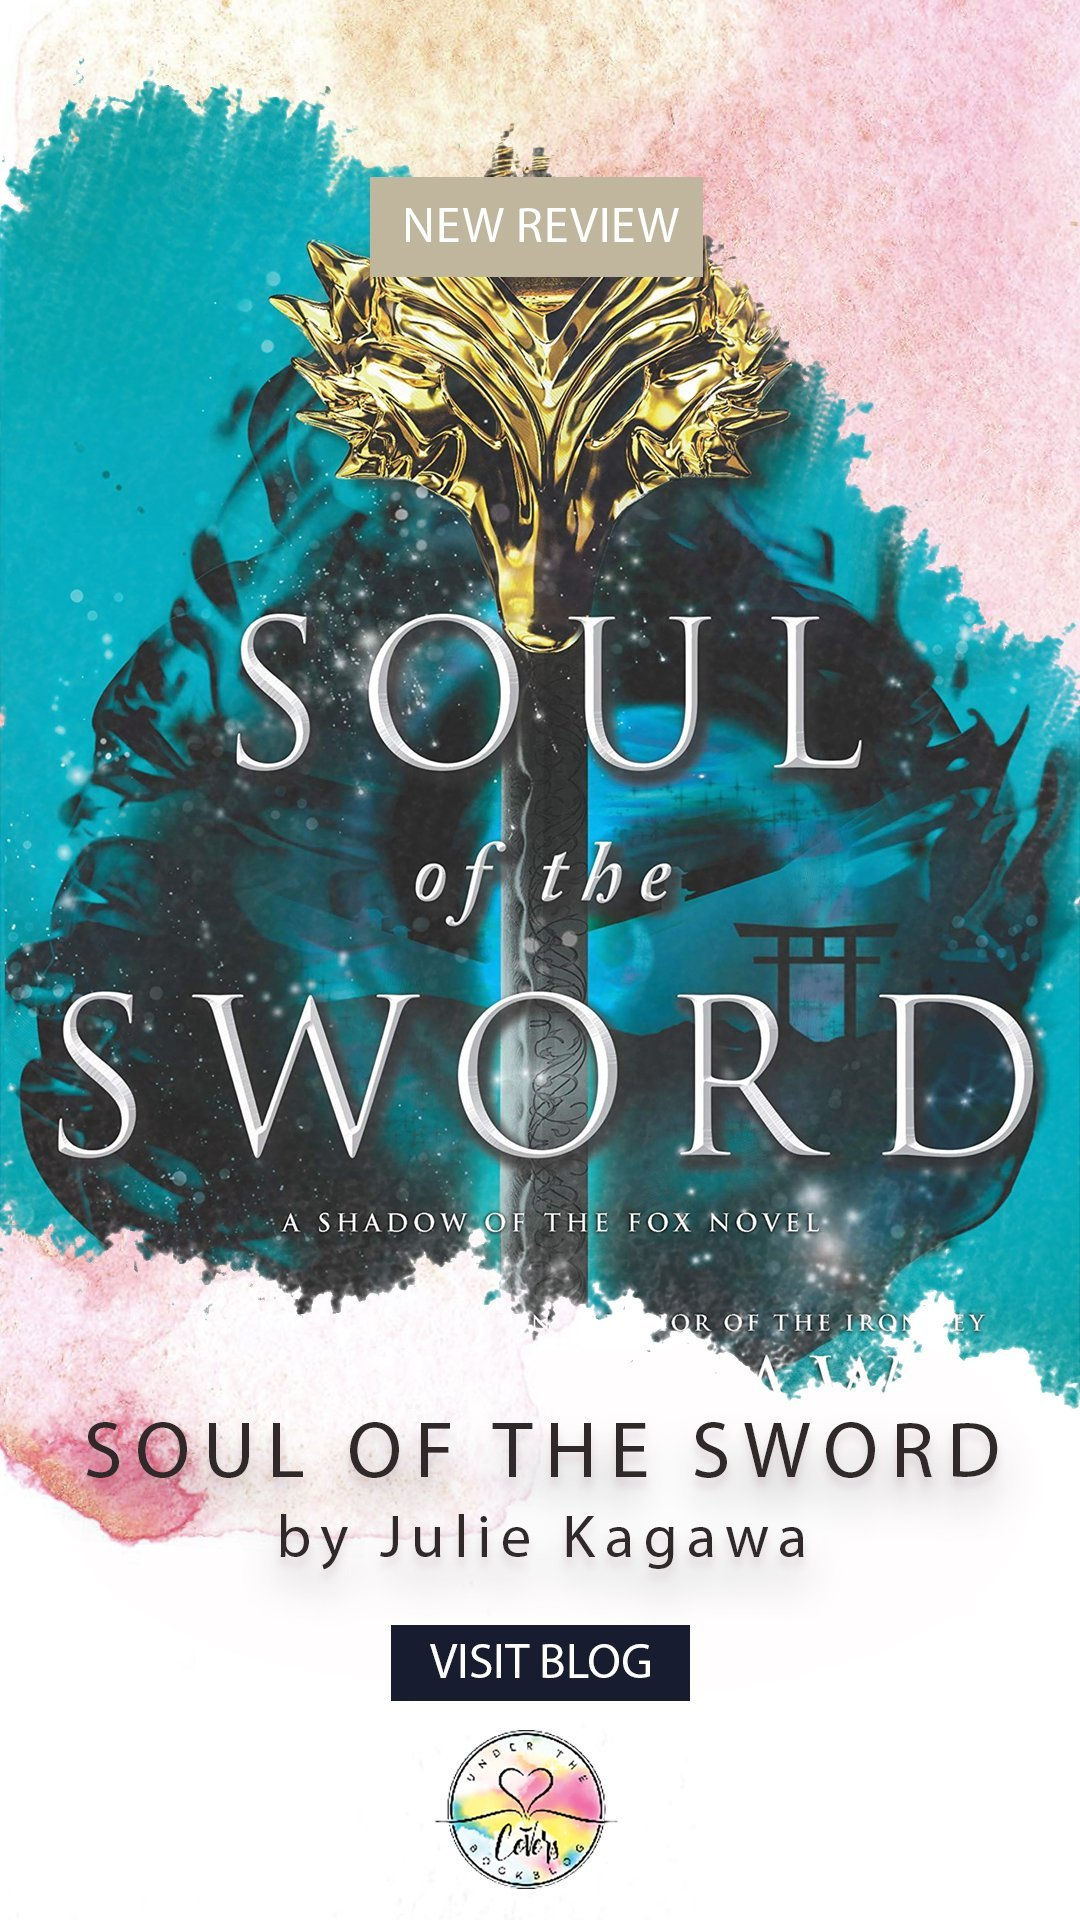 ARC Review: Soul of the Sword by Julie Kagawa